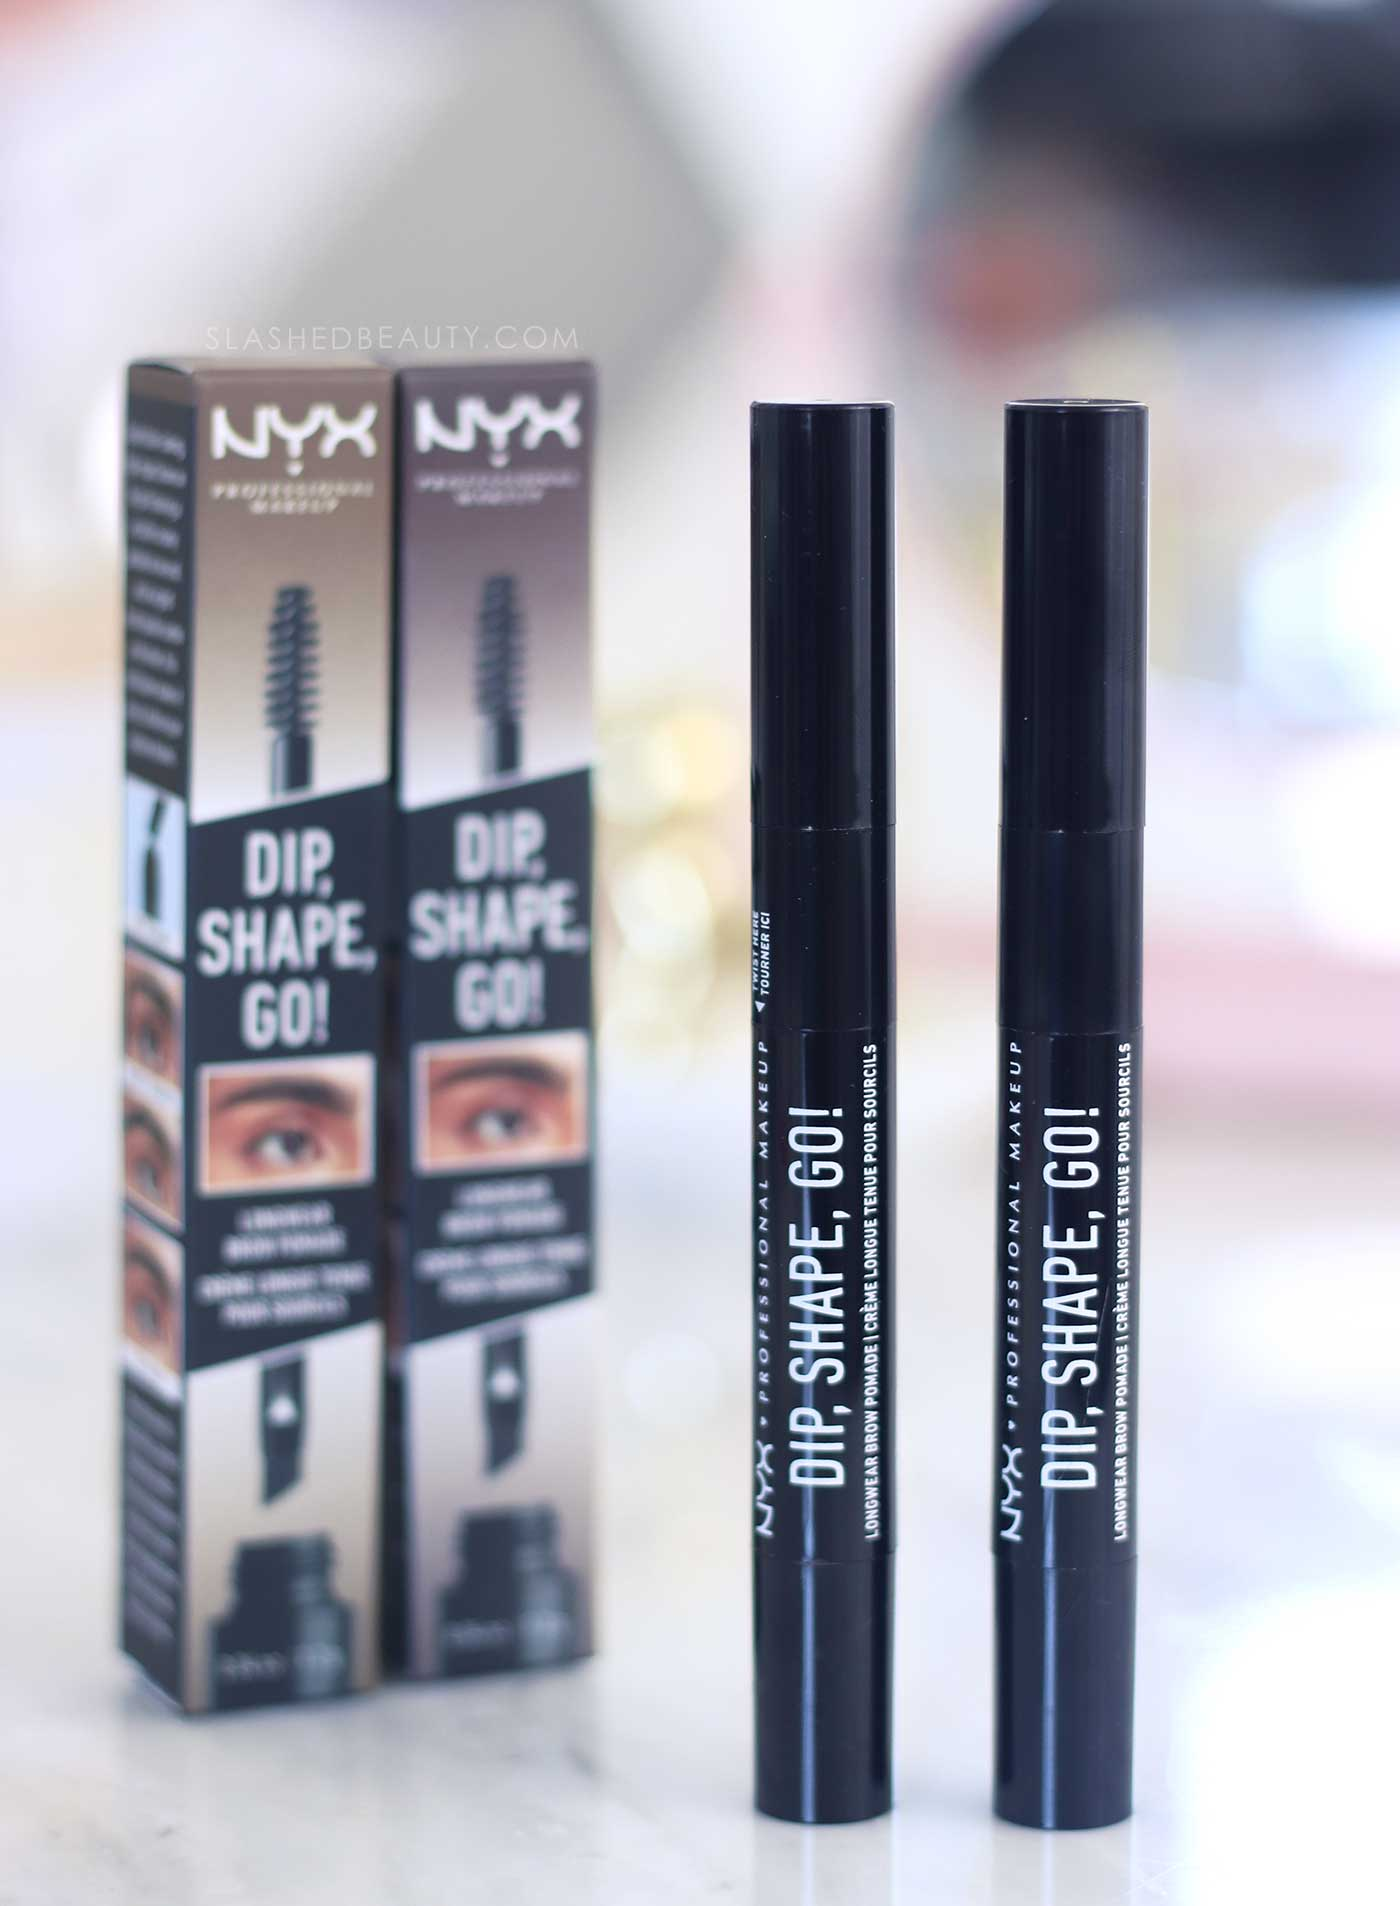 NYX Dip, Shape, Go! Brow Pomade Review | Slashed Beauty